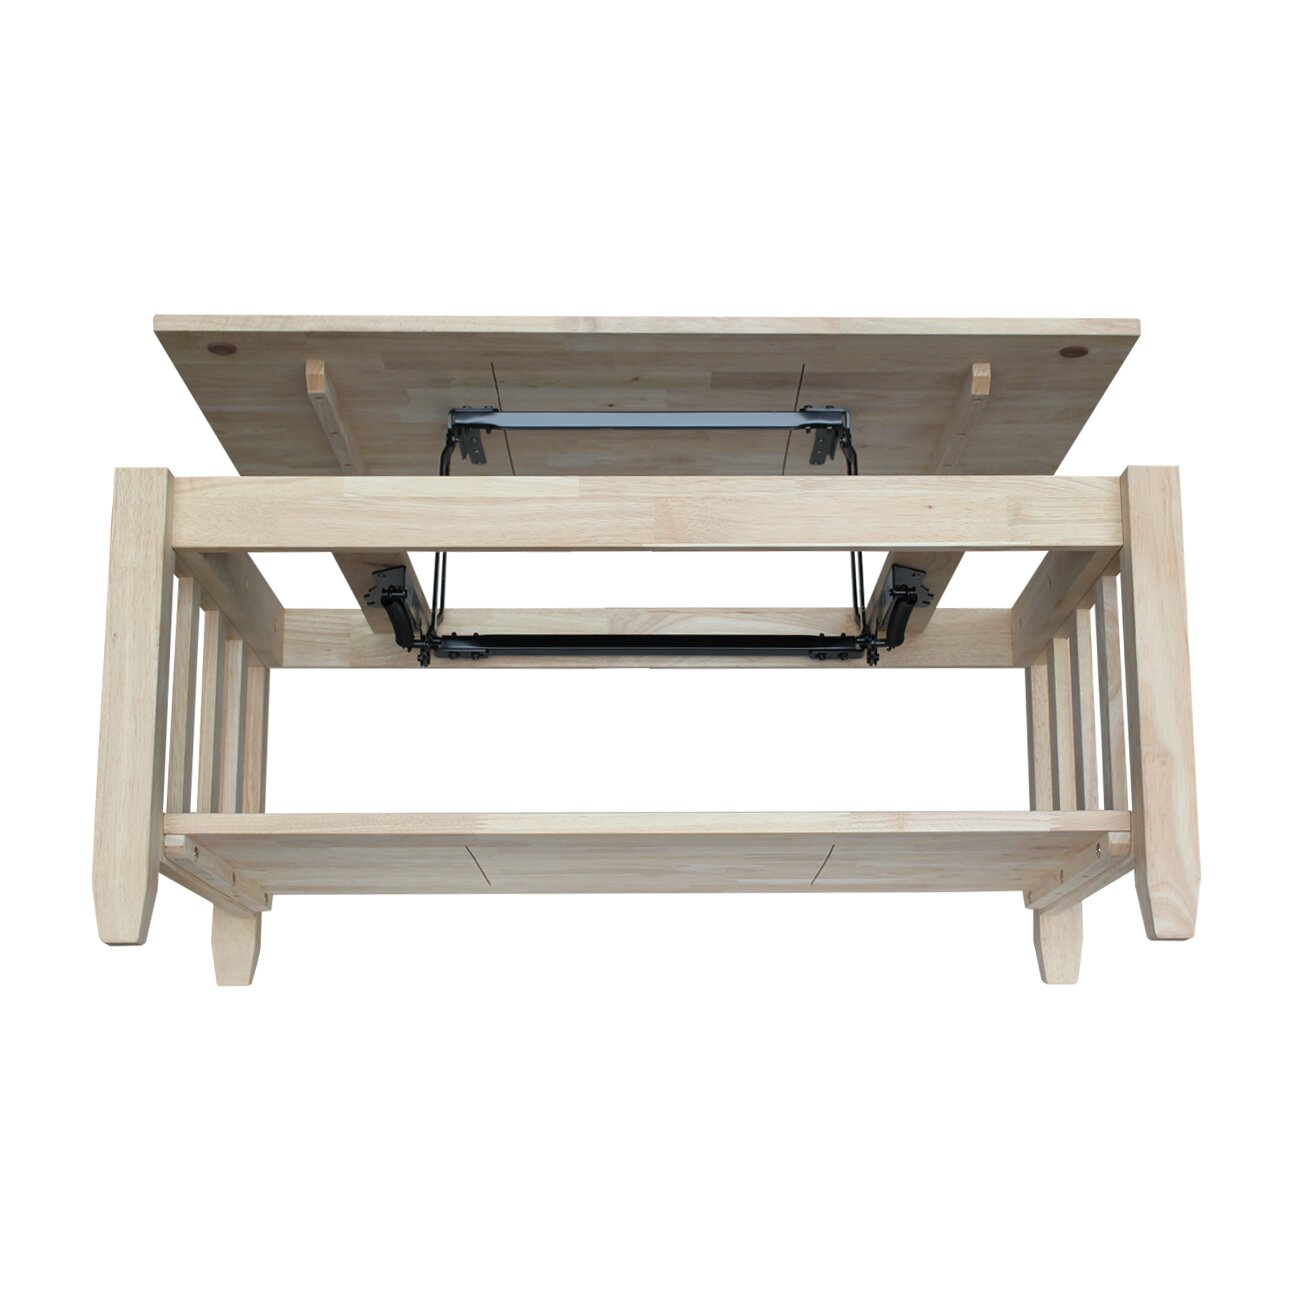 Unfinished Wood Mission Coffee Table with Lift Top - International Concepts Unfinished Wood Mission Coffee Table With